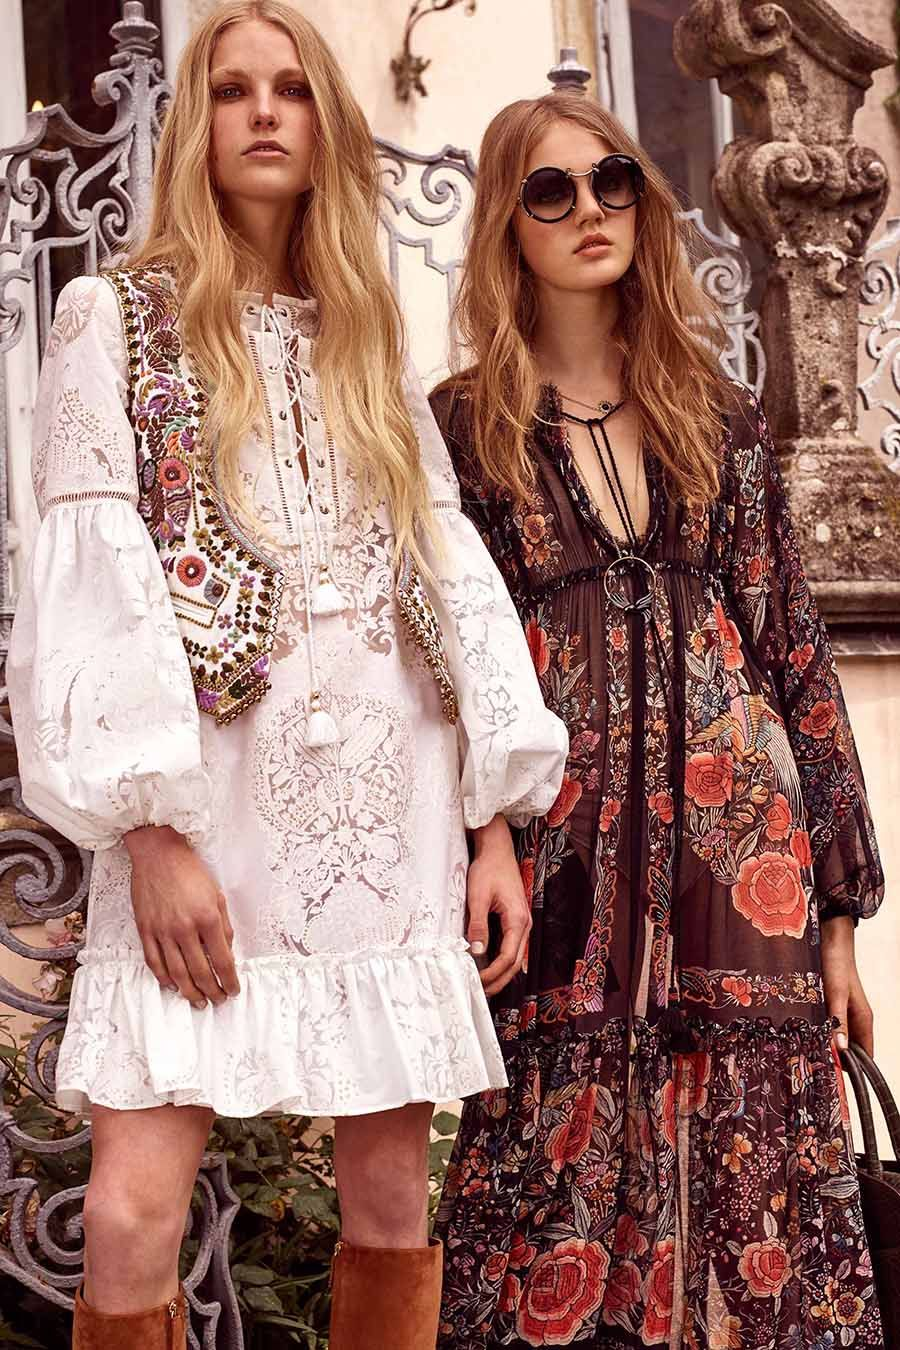 Hippy Boho chic complements